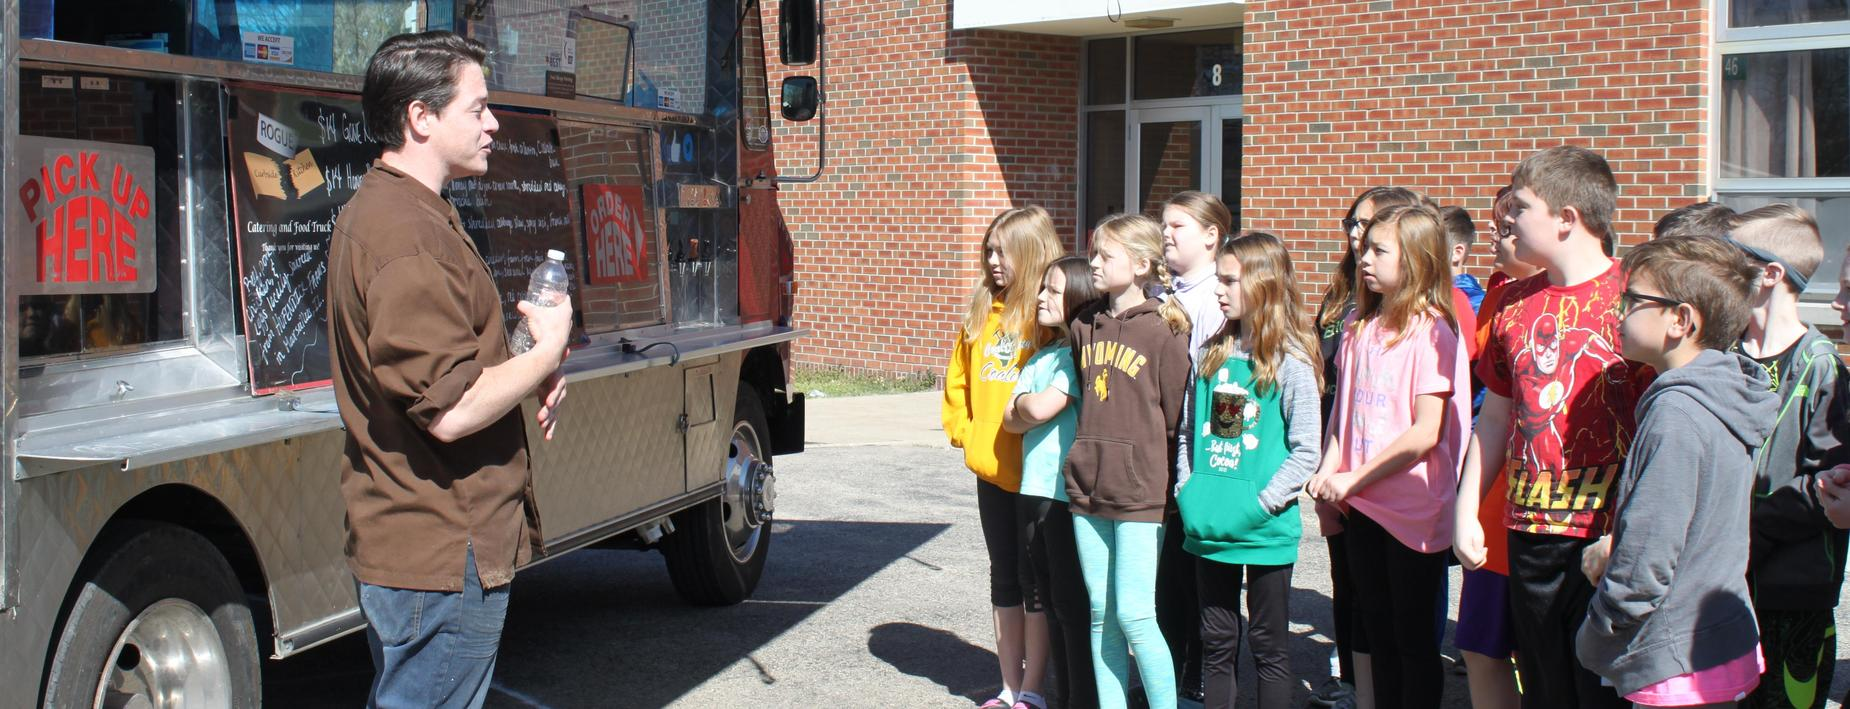 Career Day at CCIS - the Food Truck business